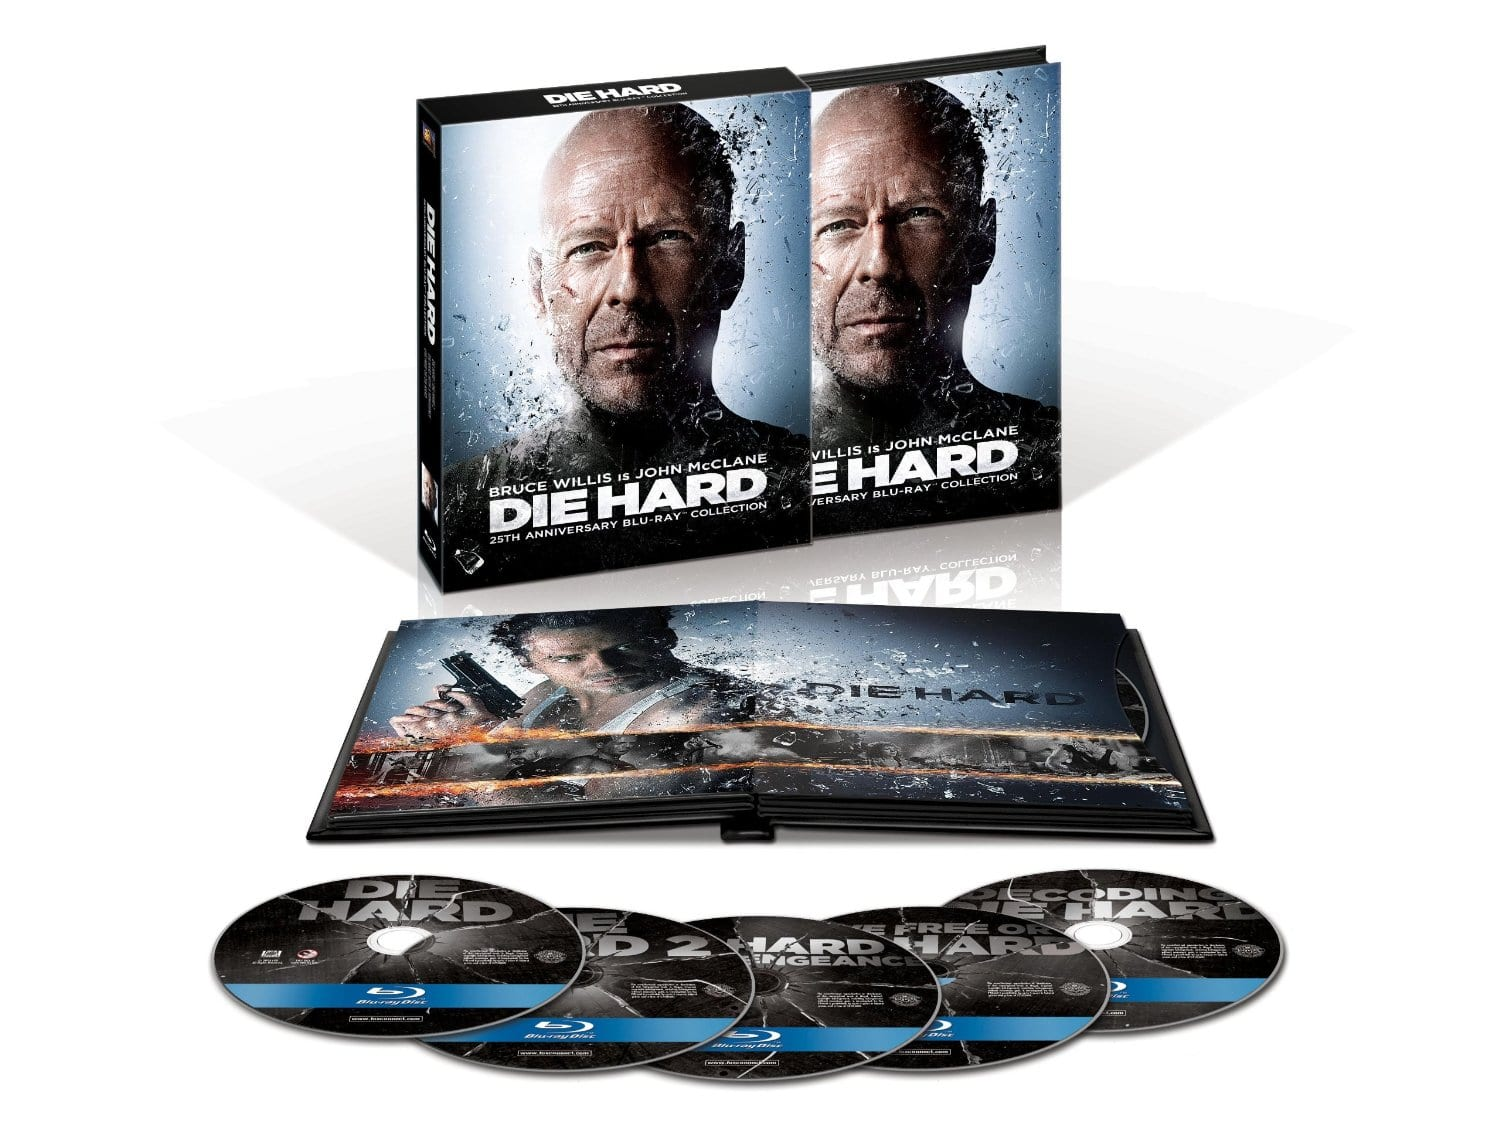 Die Hard: 25th Anniversary Collection (Blu-Ray) $19.50 + Free Shipping via Fox Connect